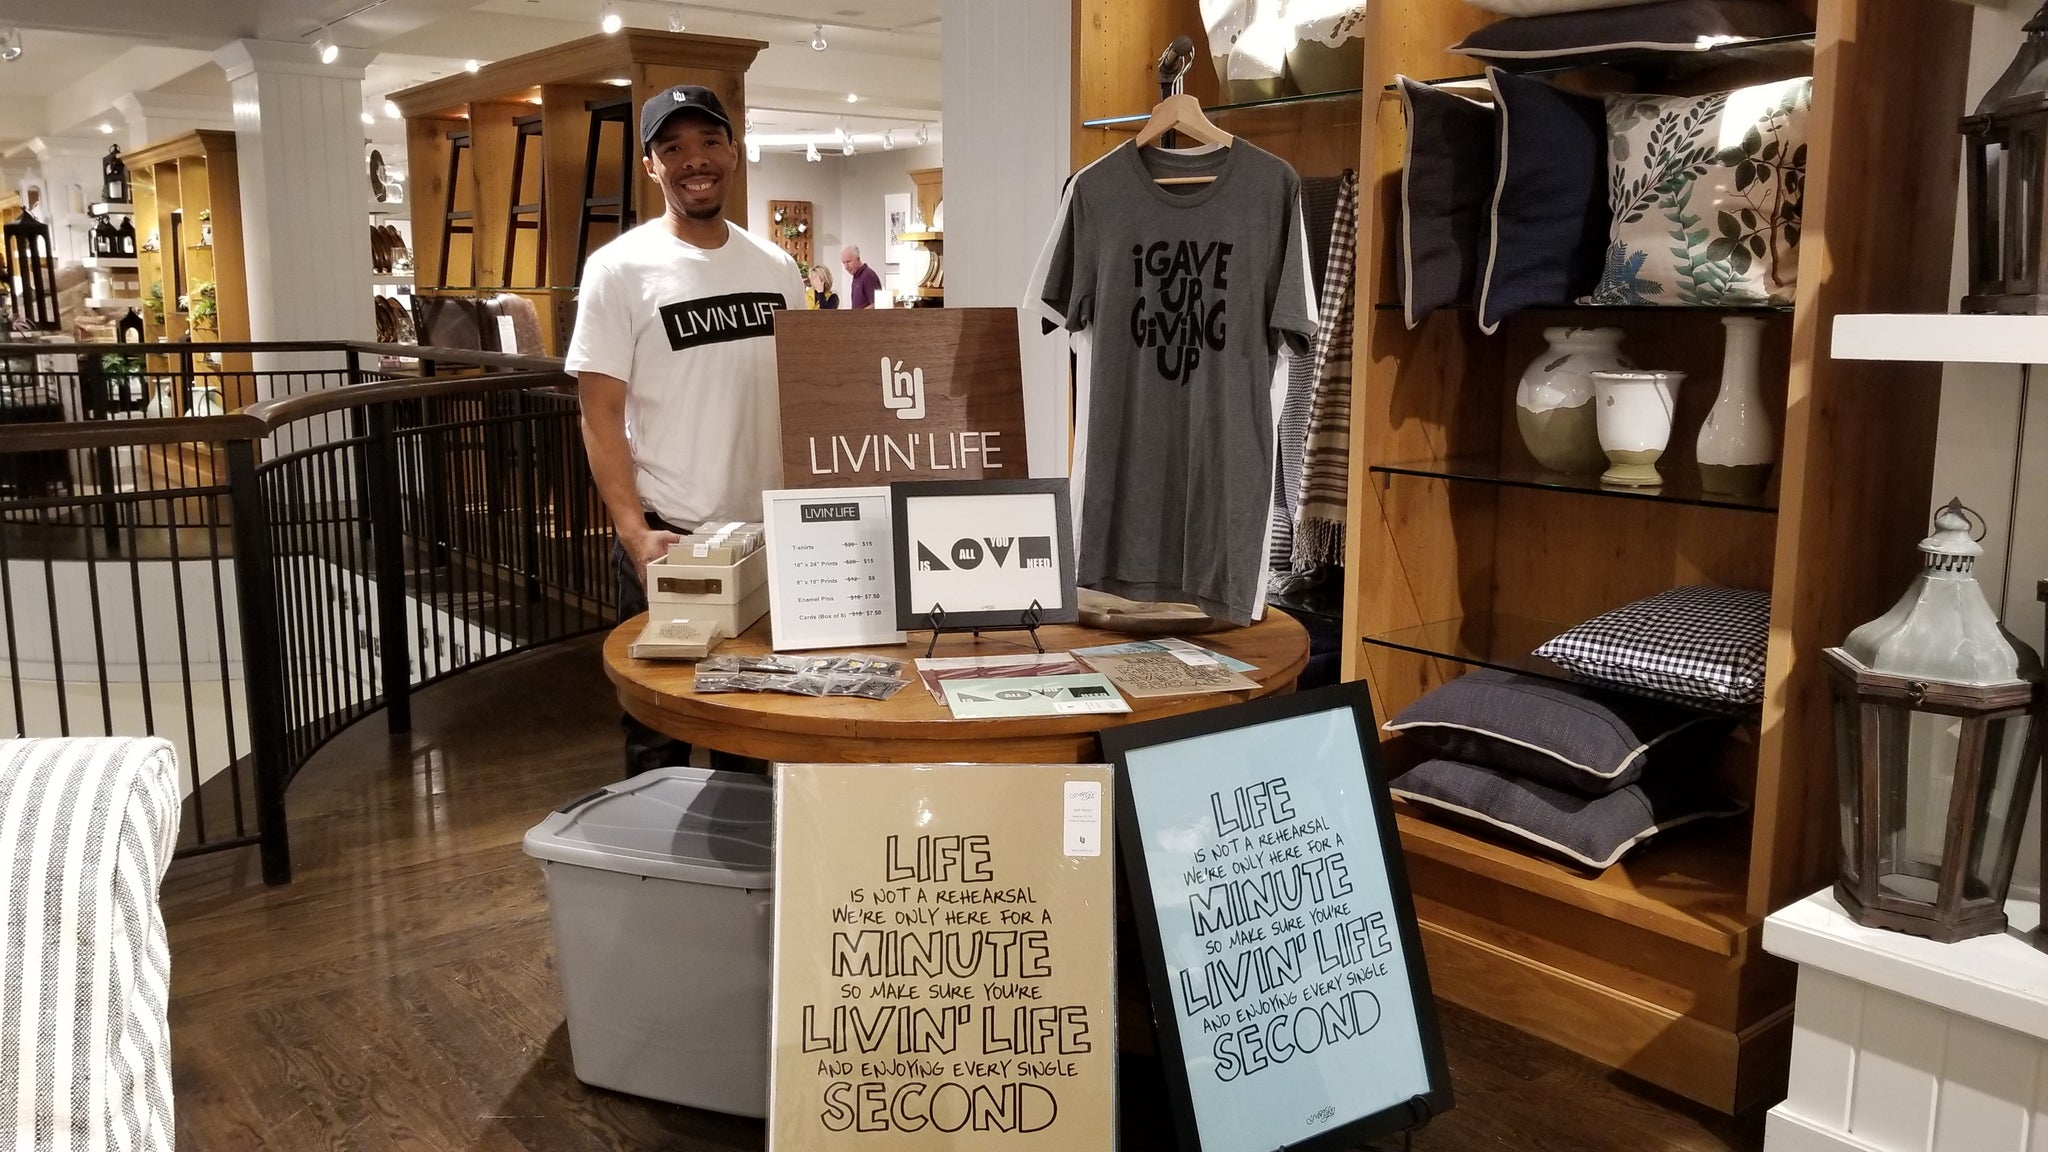 LIVIN' LIFE Pottery Barn Lenox Square Mall Pop-up Shop